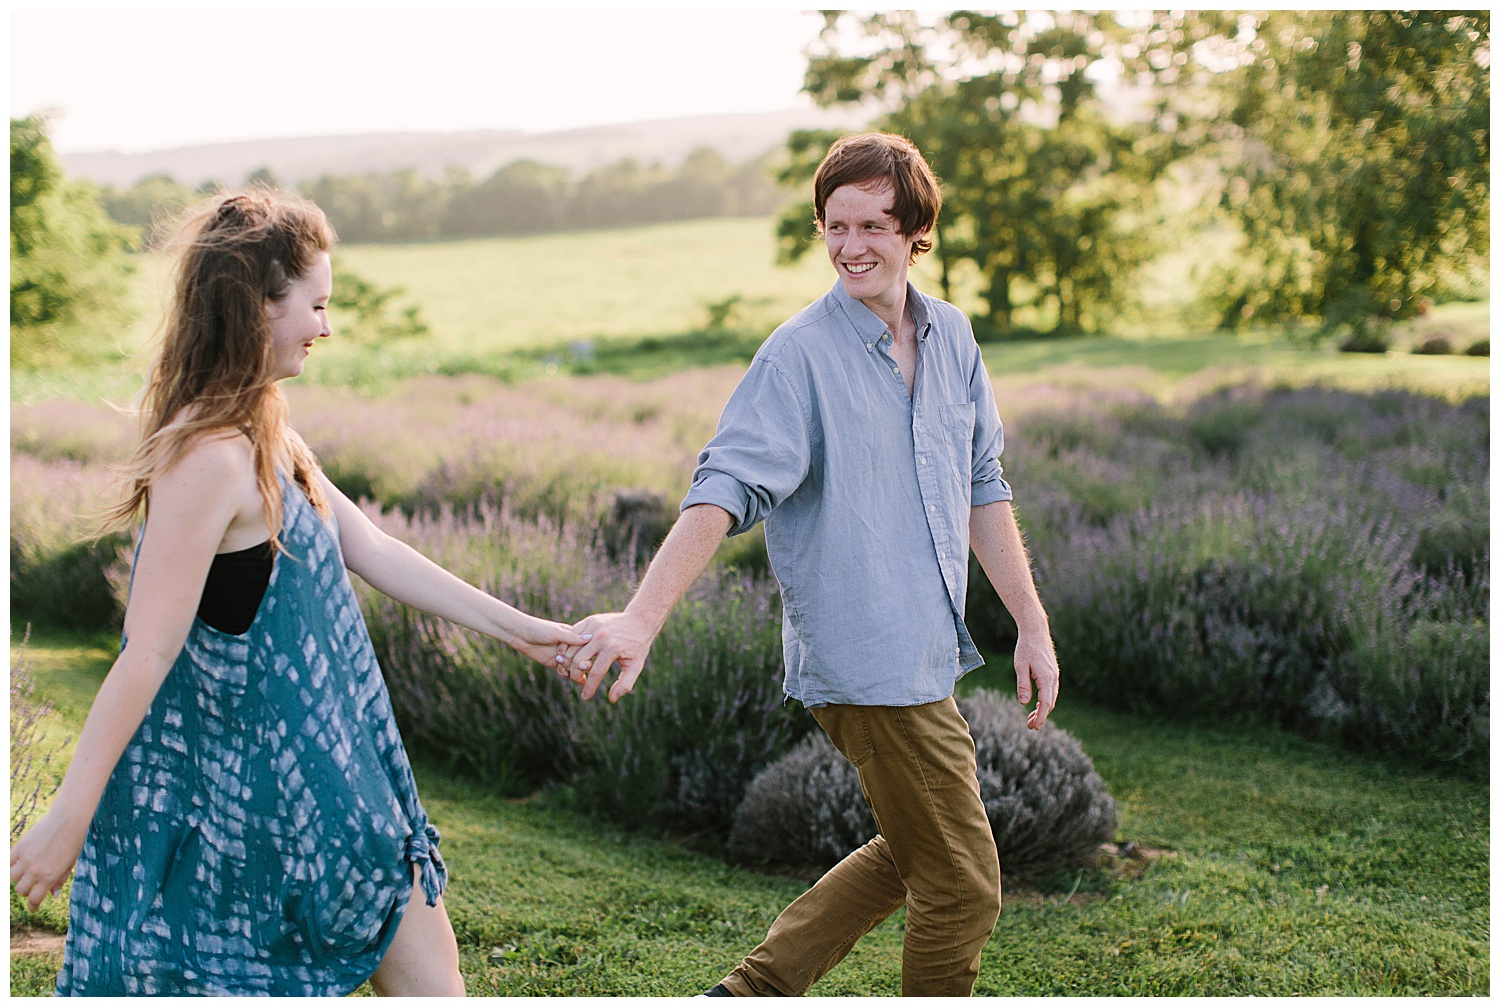 lavender.photoshoot.lavenderfarm.kentucky.engagement.anniversary.photography-38.jpg